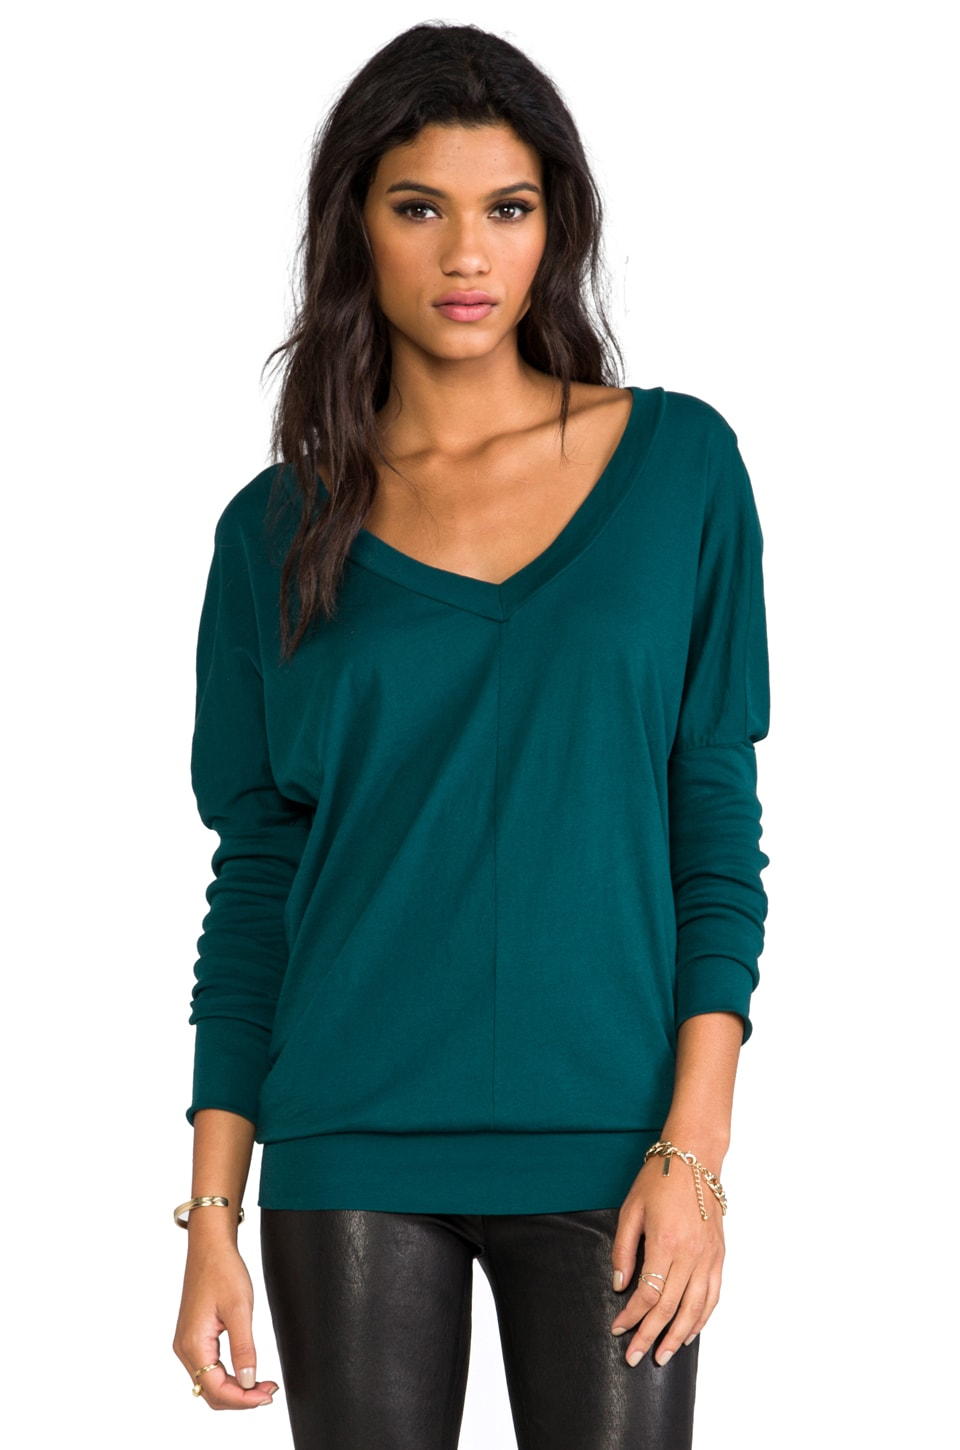 Bobi Light Weight Jersey Slouchy Top in Ivy